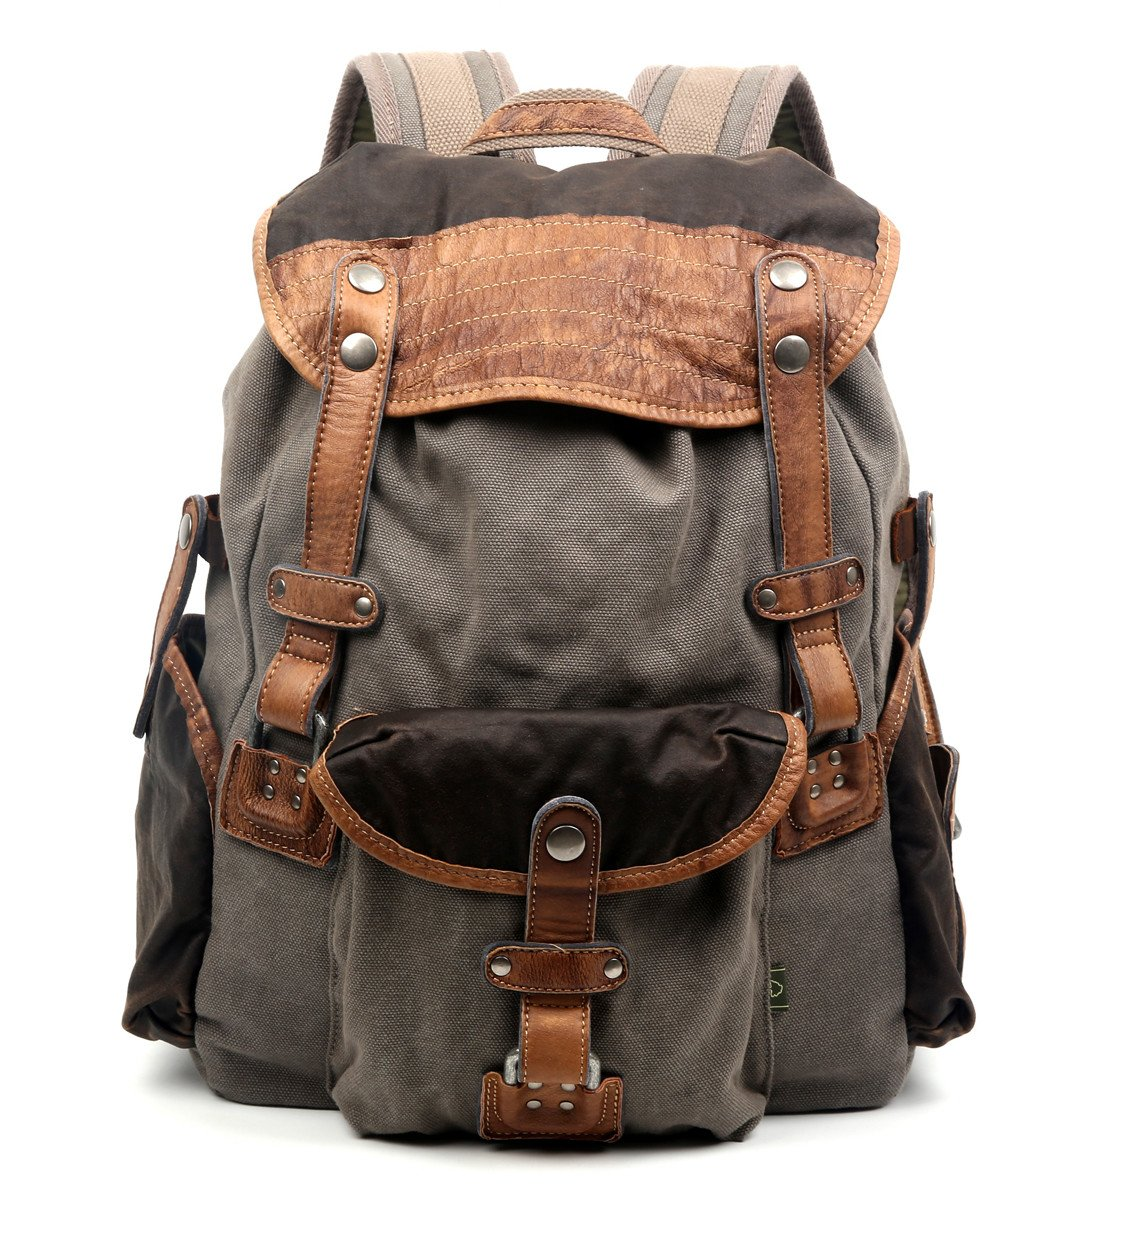 5d6bc4a71f76 Amazon.com  The Same Direction Tapa Two Tone Canvas Backpack Leather and Canvas  Bag (Grey)  More Lane Inc.